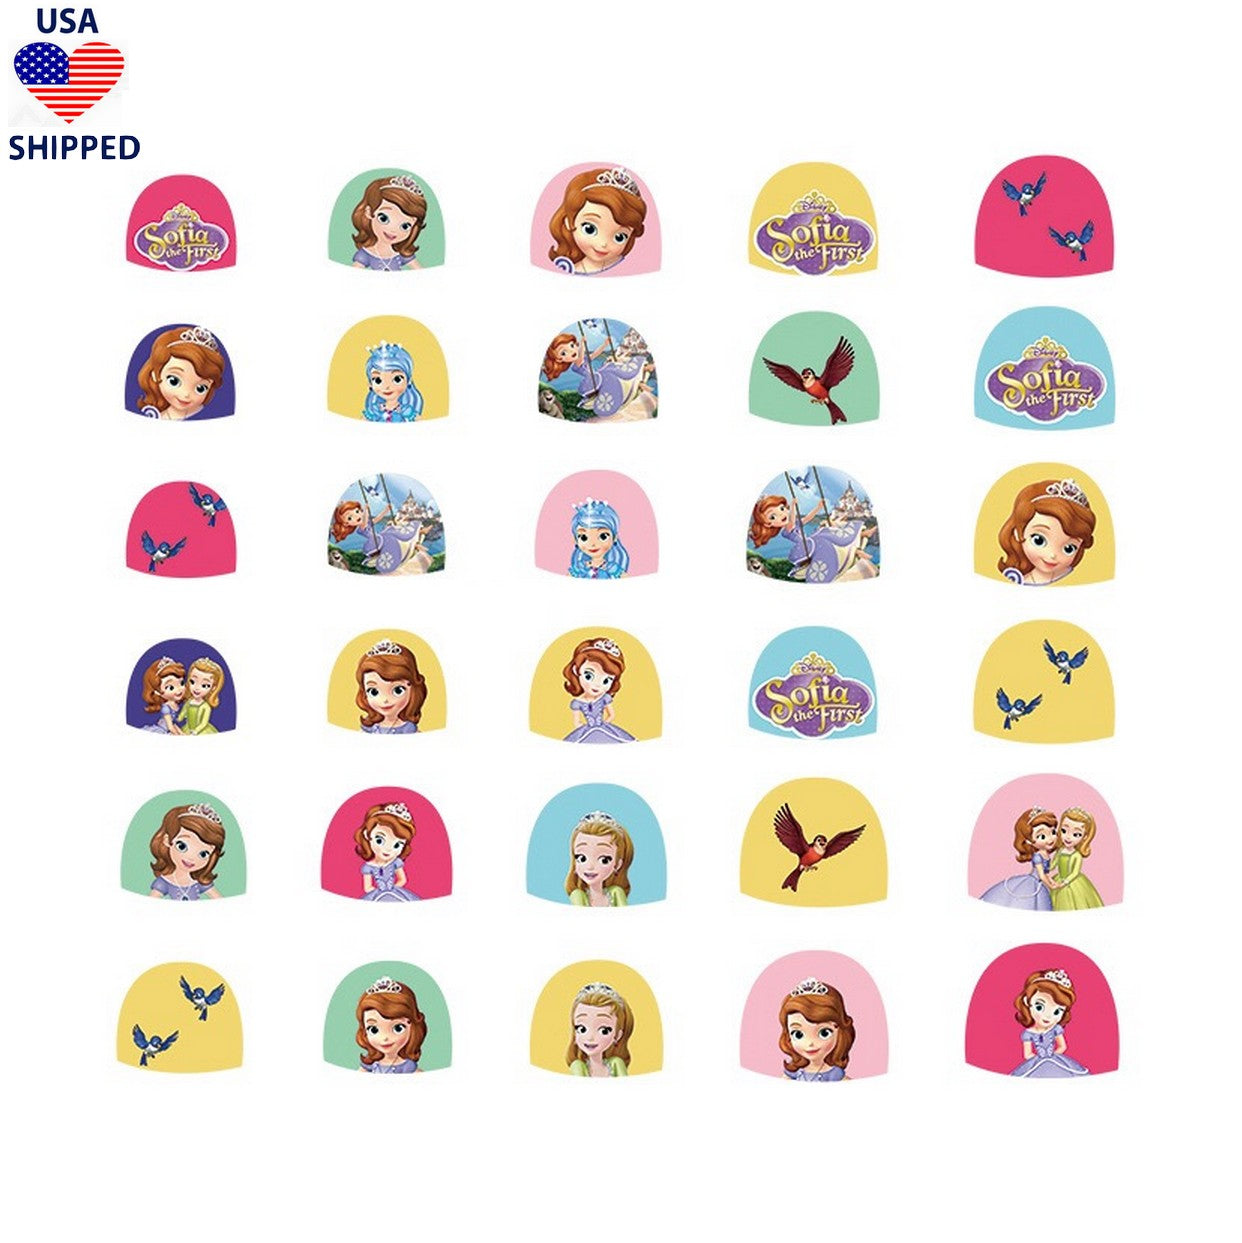 (USA) Kids SOF Nail Stickers